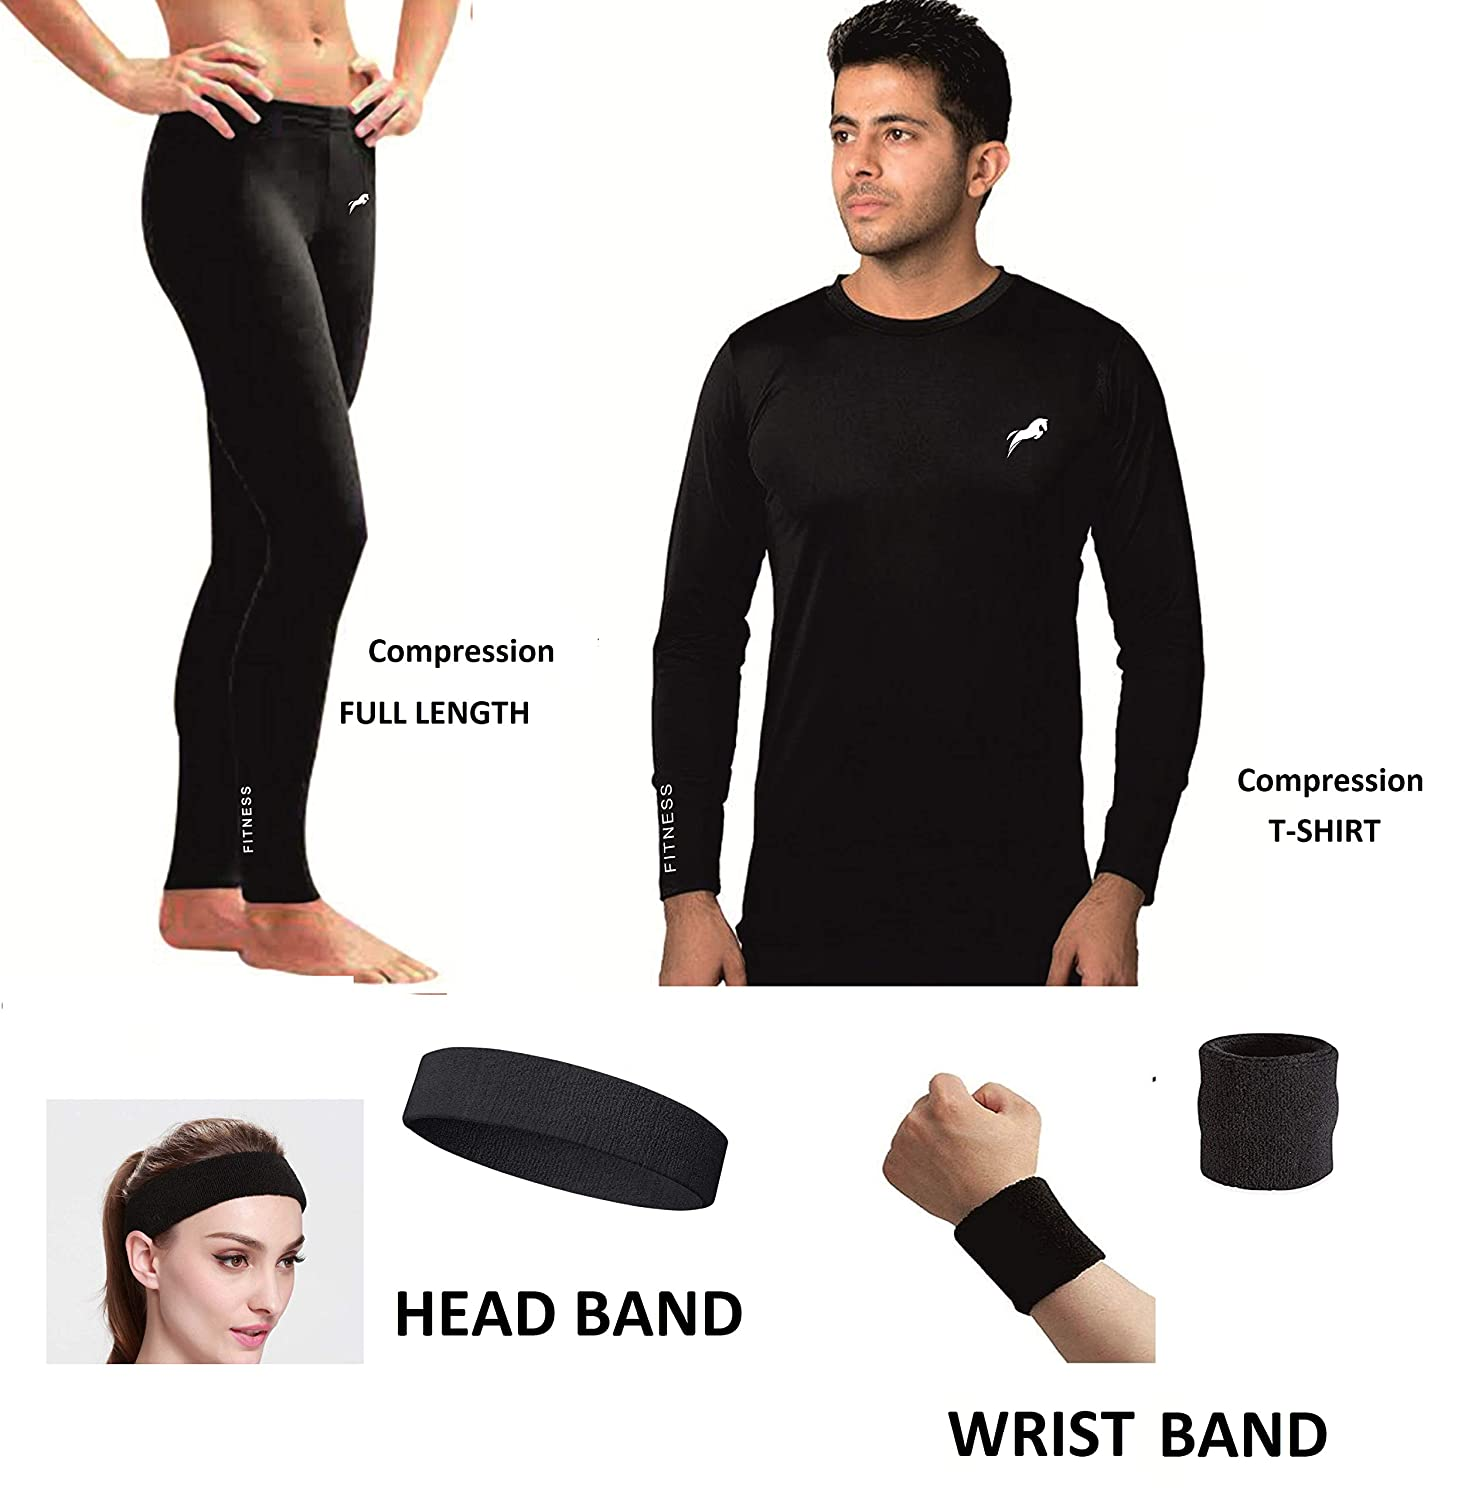 2ff72714af10 Rider Full Length Compression LOWER With Full Sleeve T-SHIRT 100% COTTON  WRIST BAND & HEAD BAND Free Multi Sports Exercise/Gym/Running/Yoga/Other  Outdoor ...